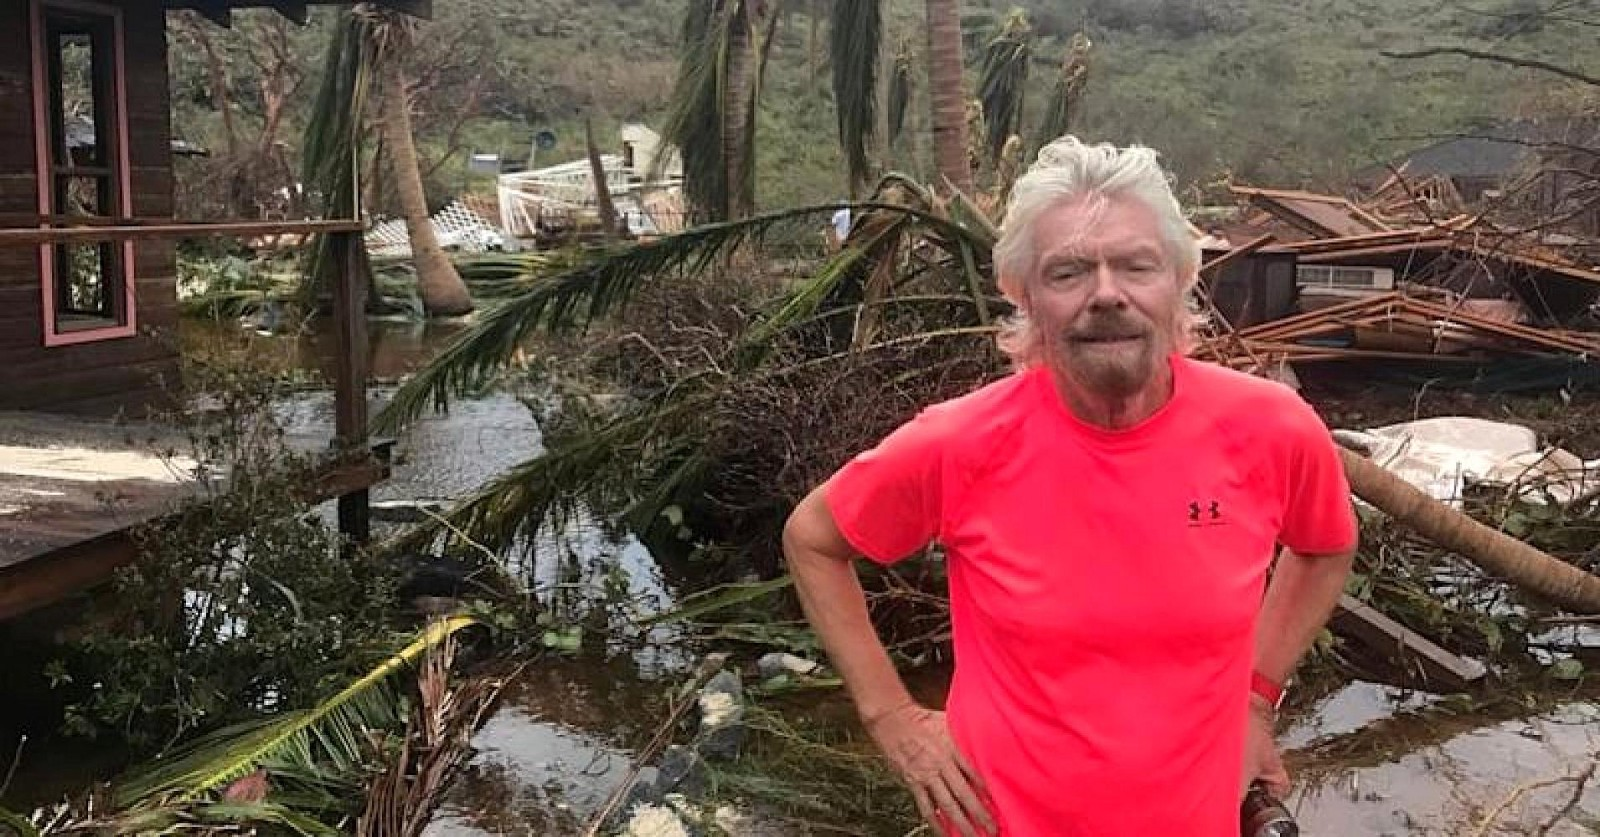 Picture source: CNBC. Richard Branson on Necker Island, post Hurricane Irma. Media coverage reports that Branson and his team have been personally providing enormous aid and relief services throughout the Virgin Islands, post disaster.